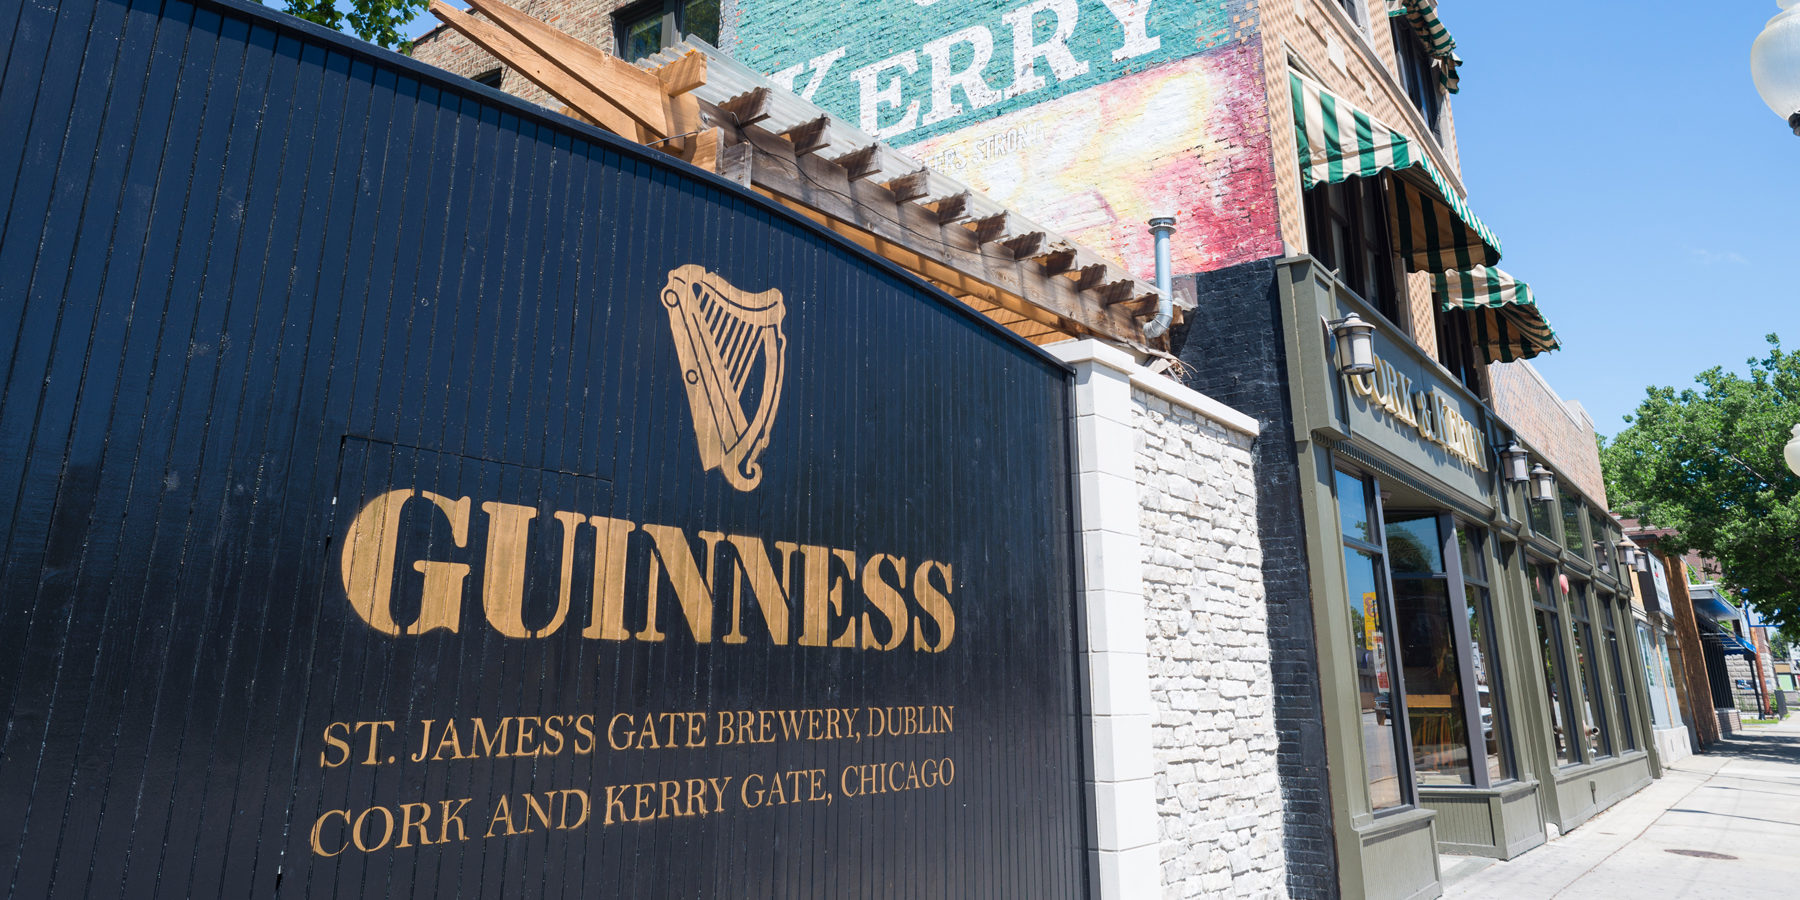 Celebrate St. Patrick's Day in Chicago's neighborhoods